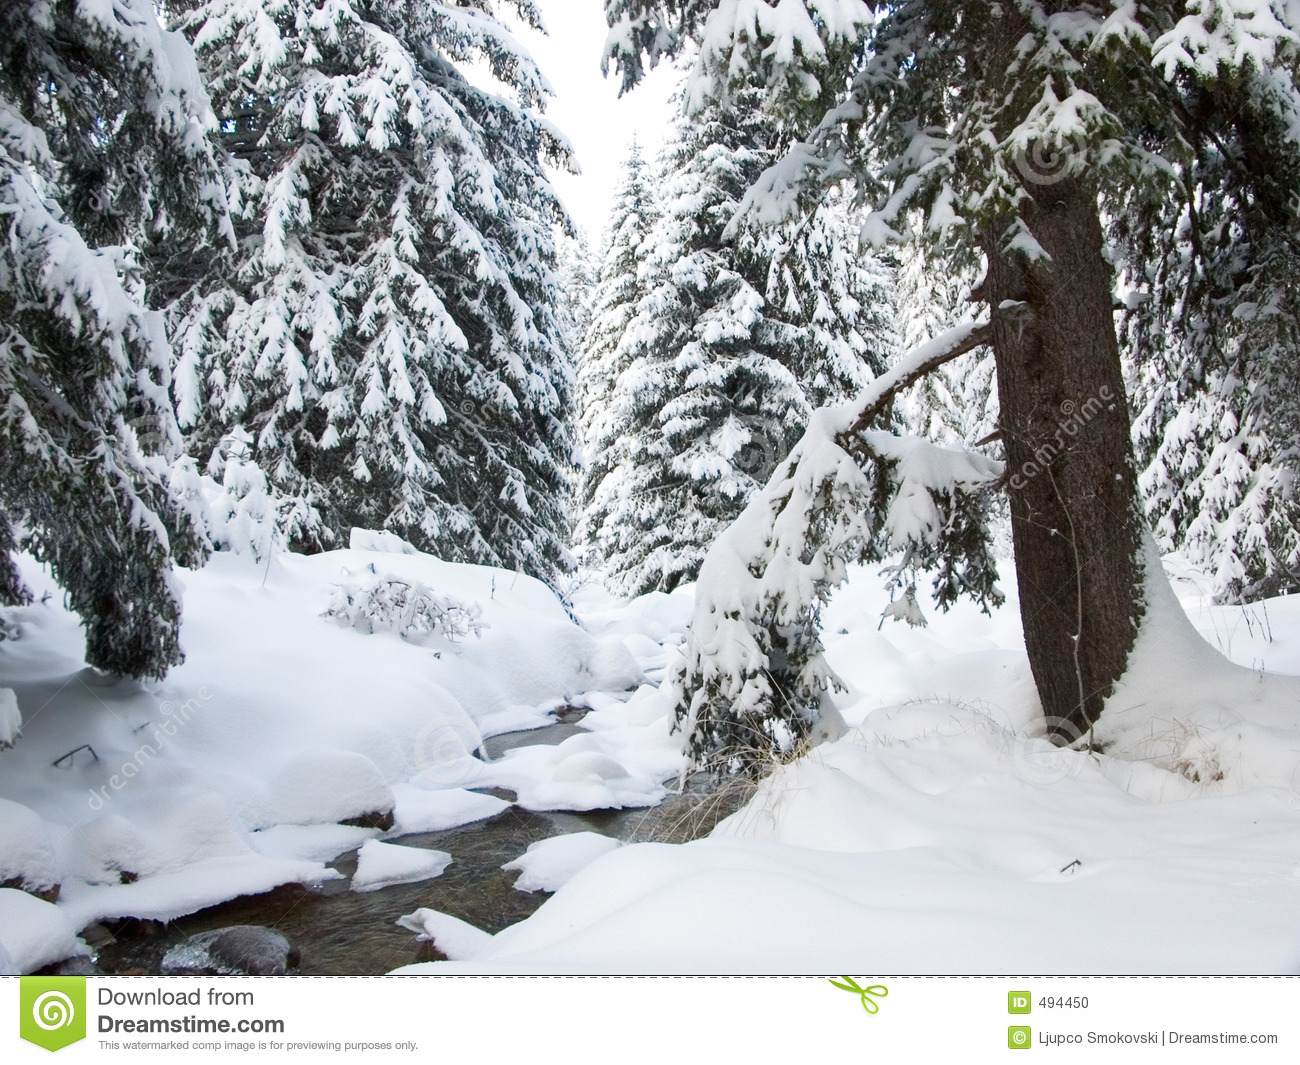 Brook and pine trees in winter